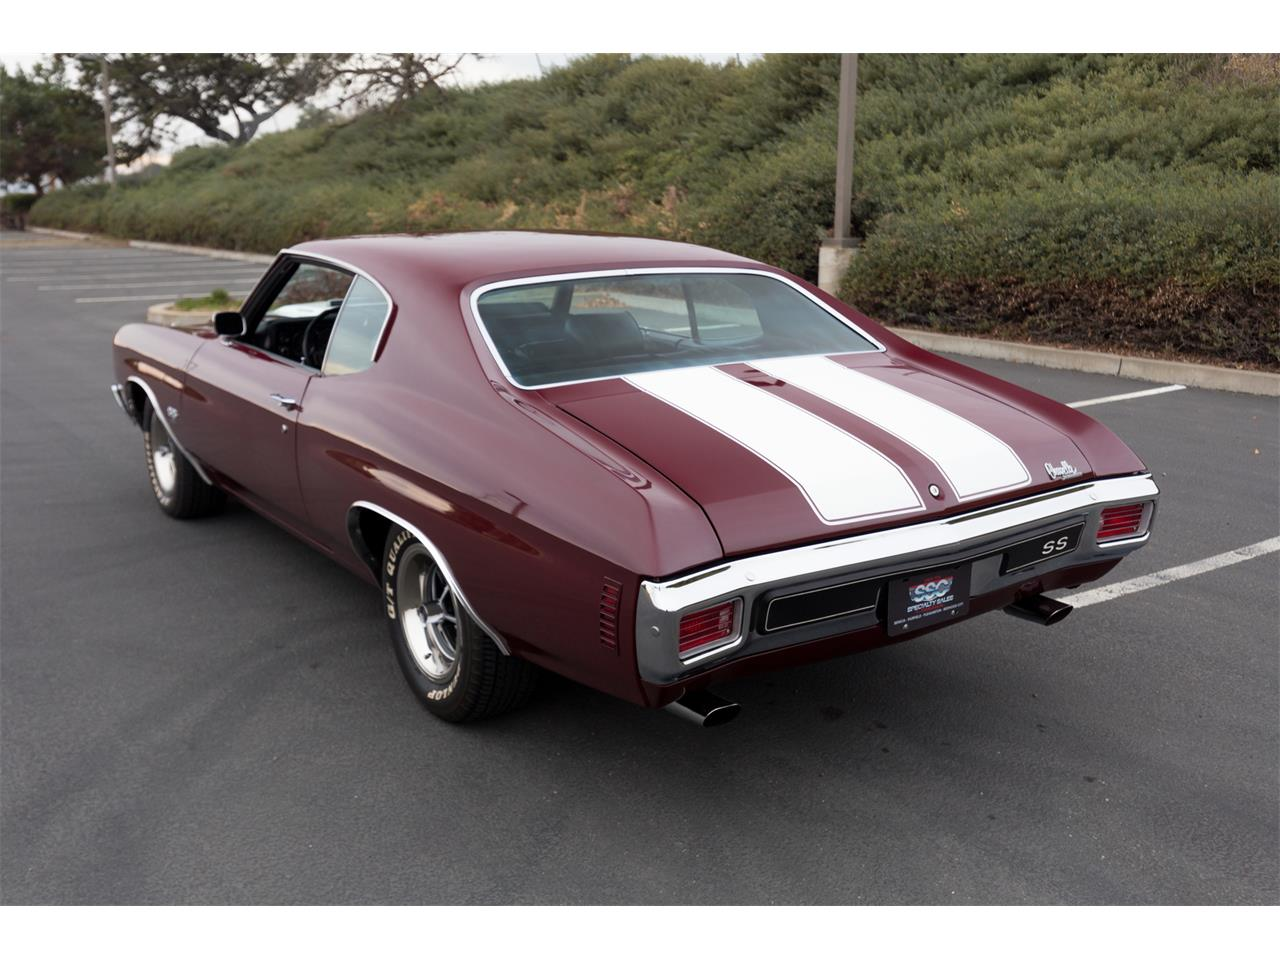 Large Picture of Classic 1970 Chevrolet Chevelle SS located in Fairfield California - MN2G